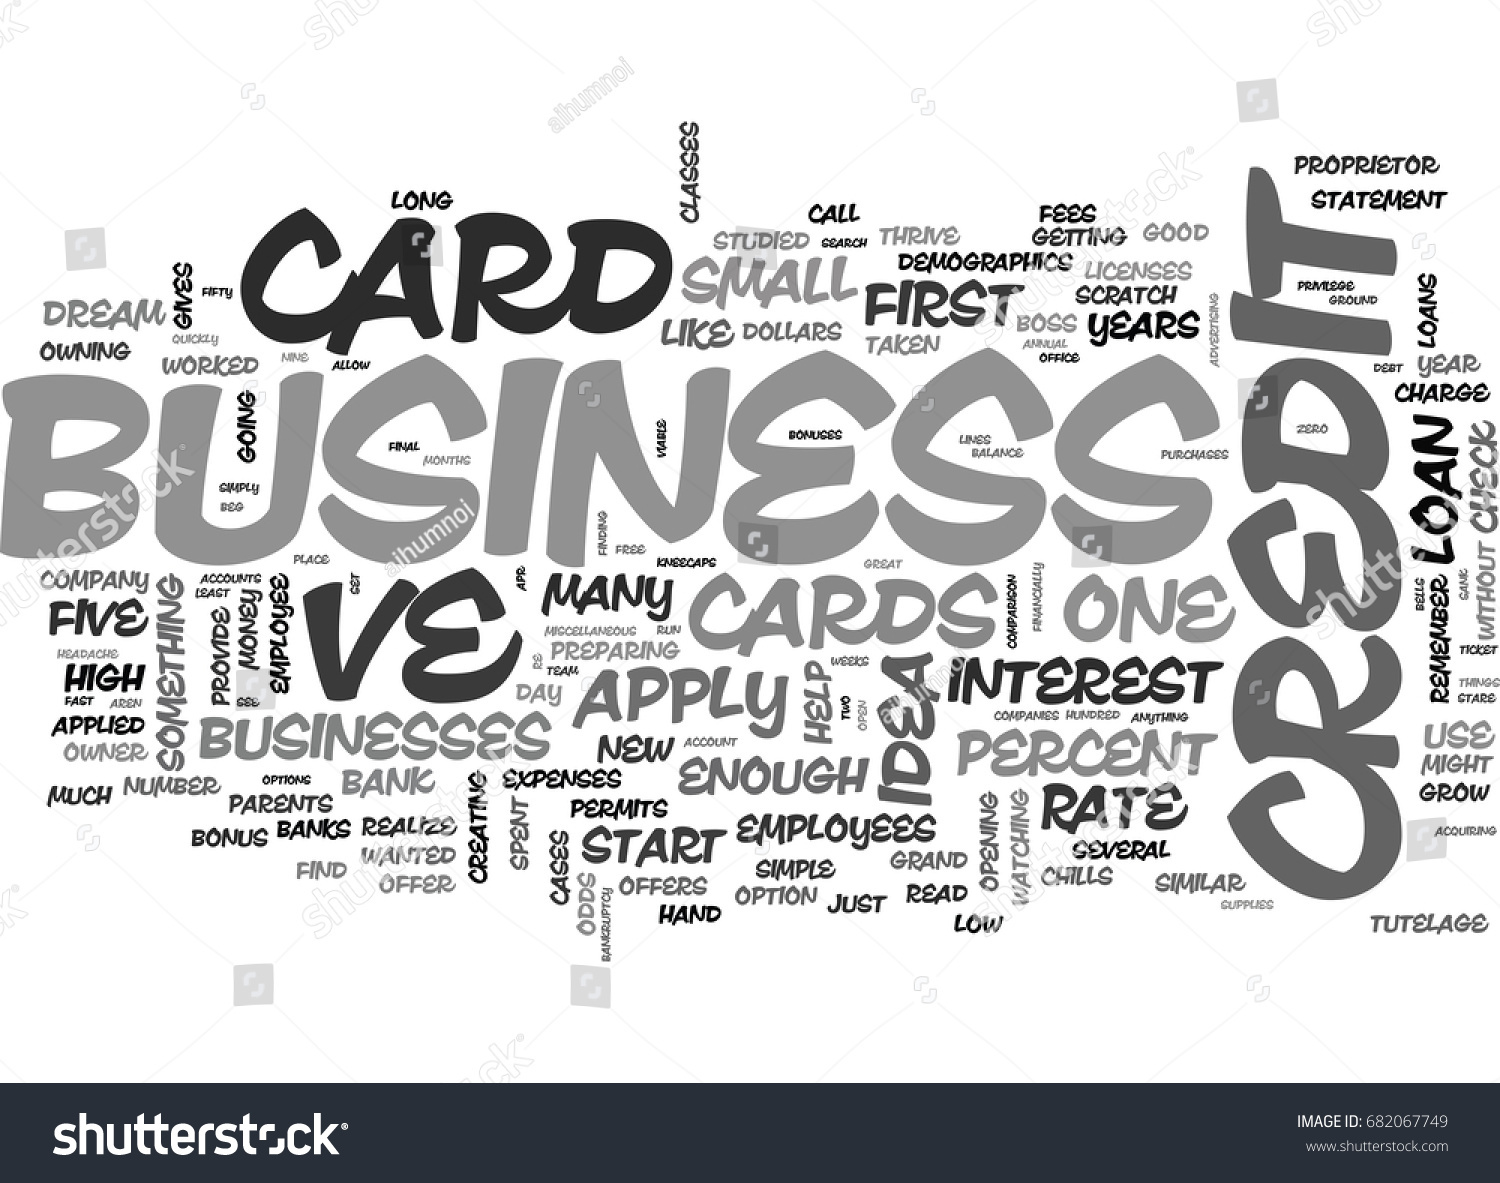 Business charge card gallery free business cards apply for business credit card images free business cards applying for business credit card choice image magicingreecefo Images